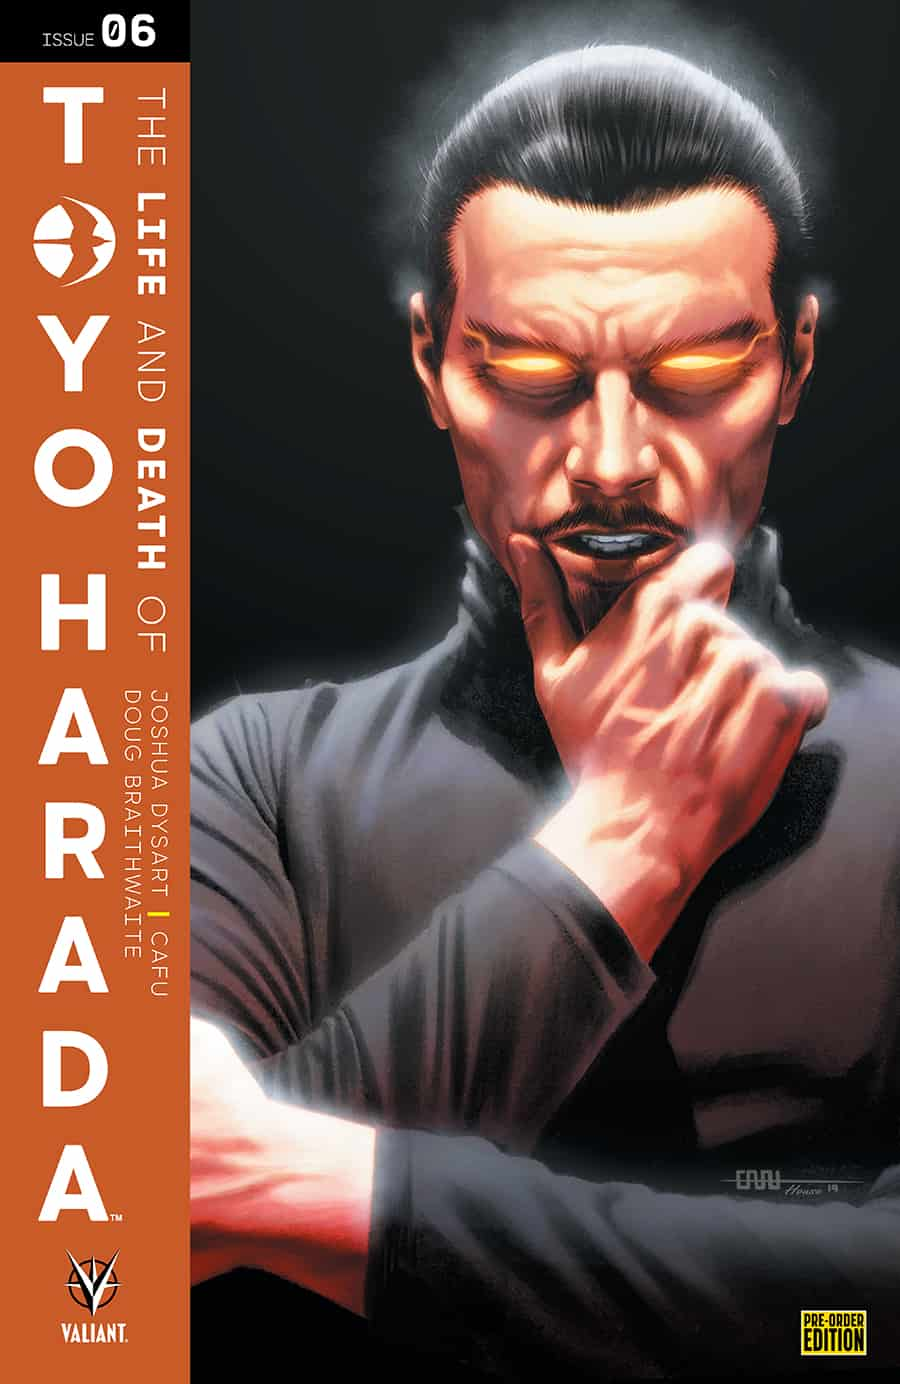 THE LIFE AND DEATH OF TOYO HARADA#6 - Pre-Order Edition Variant